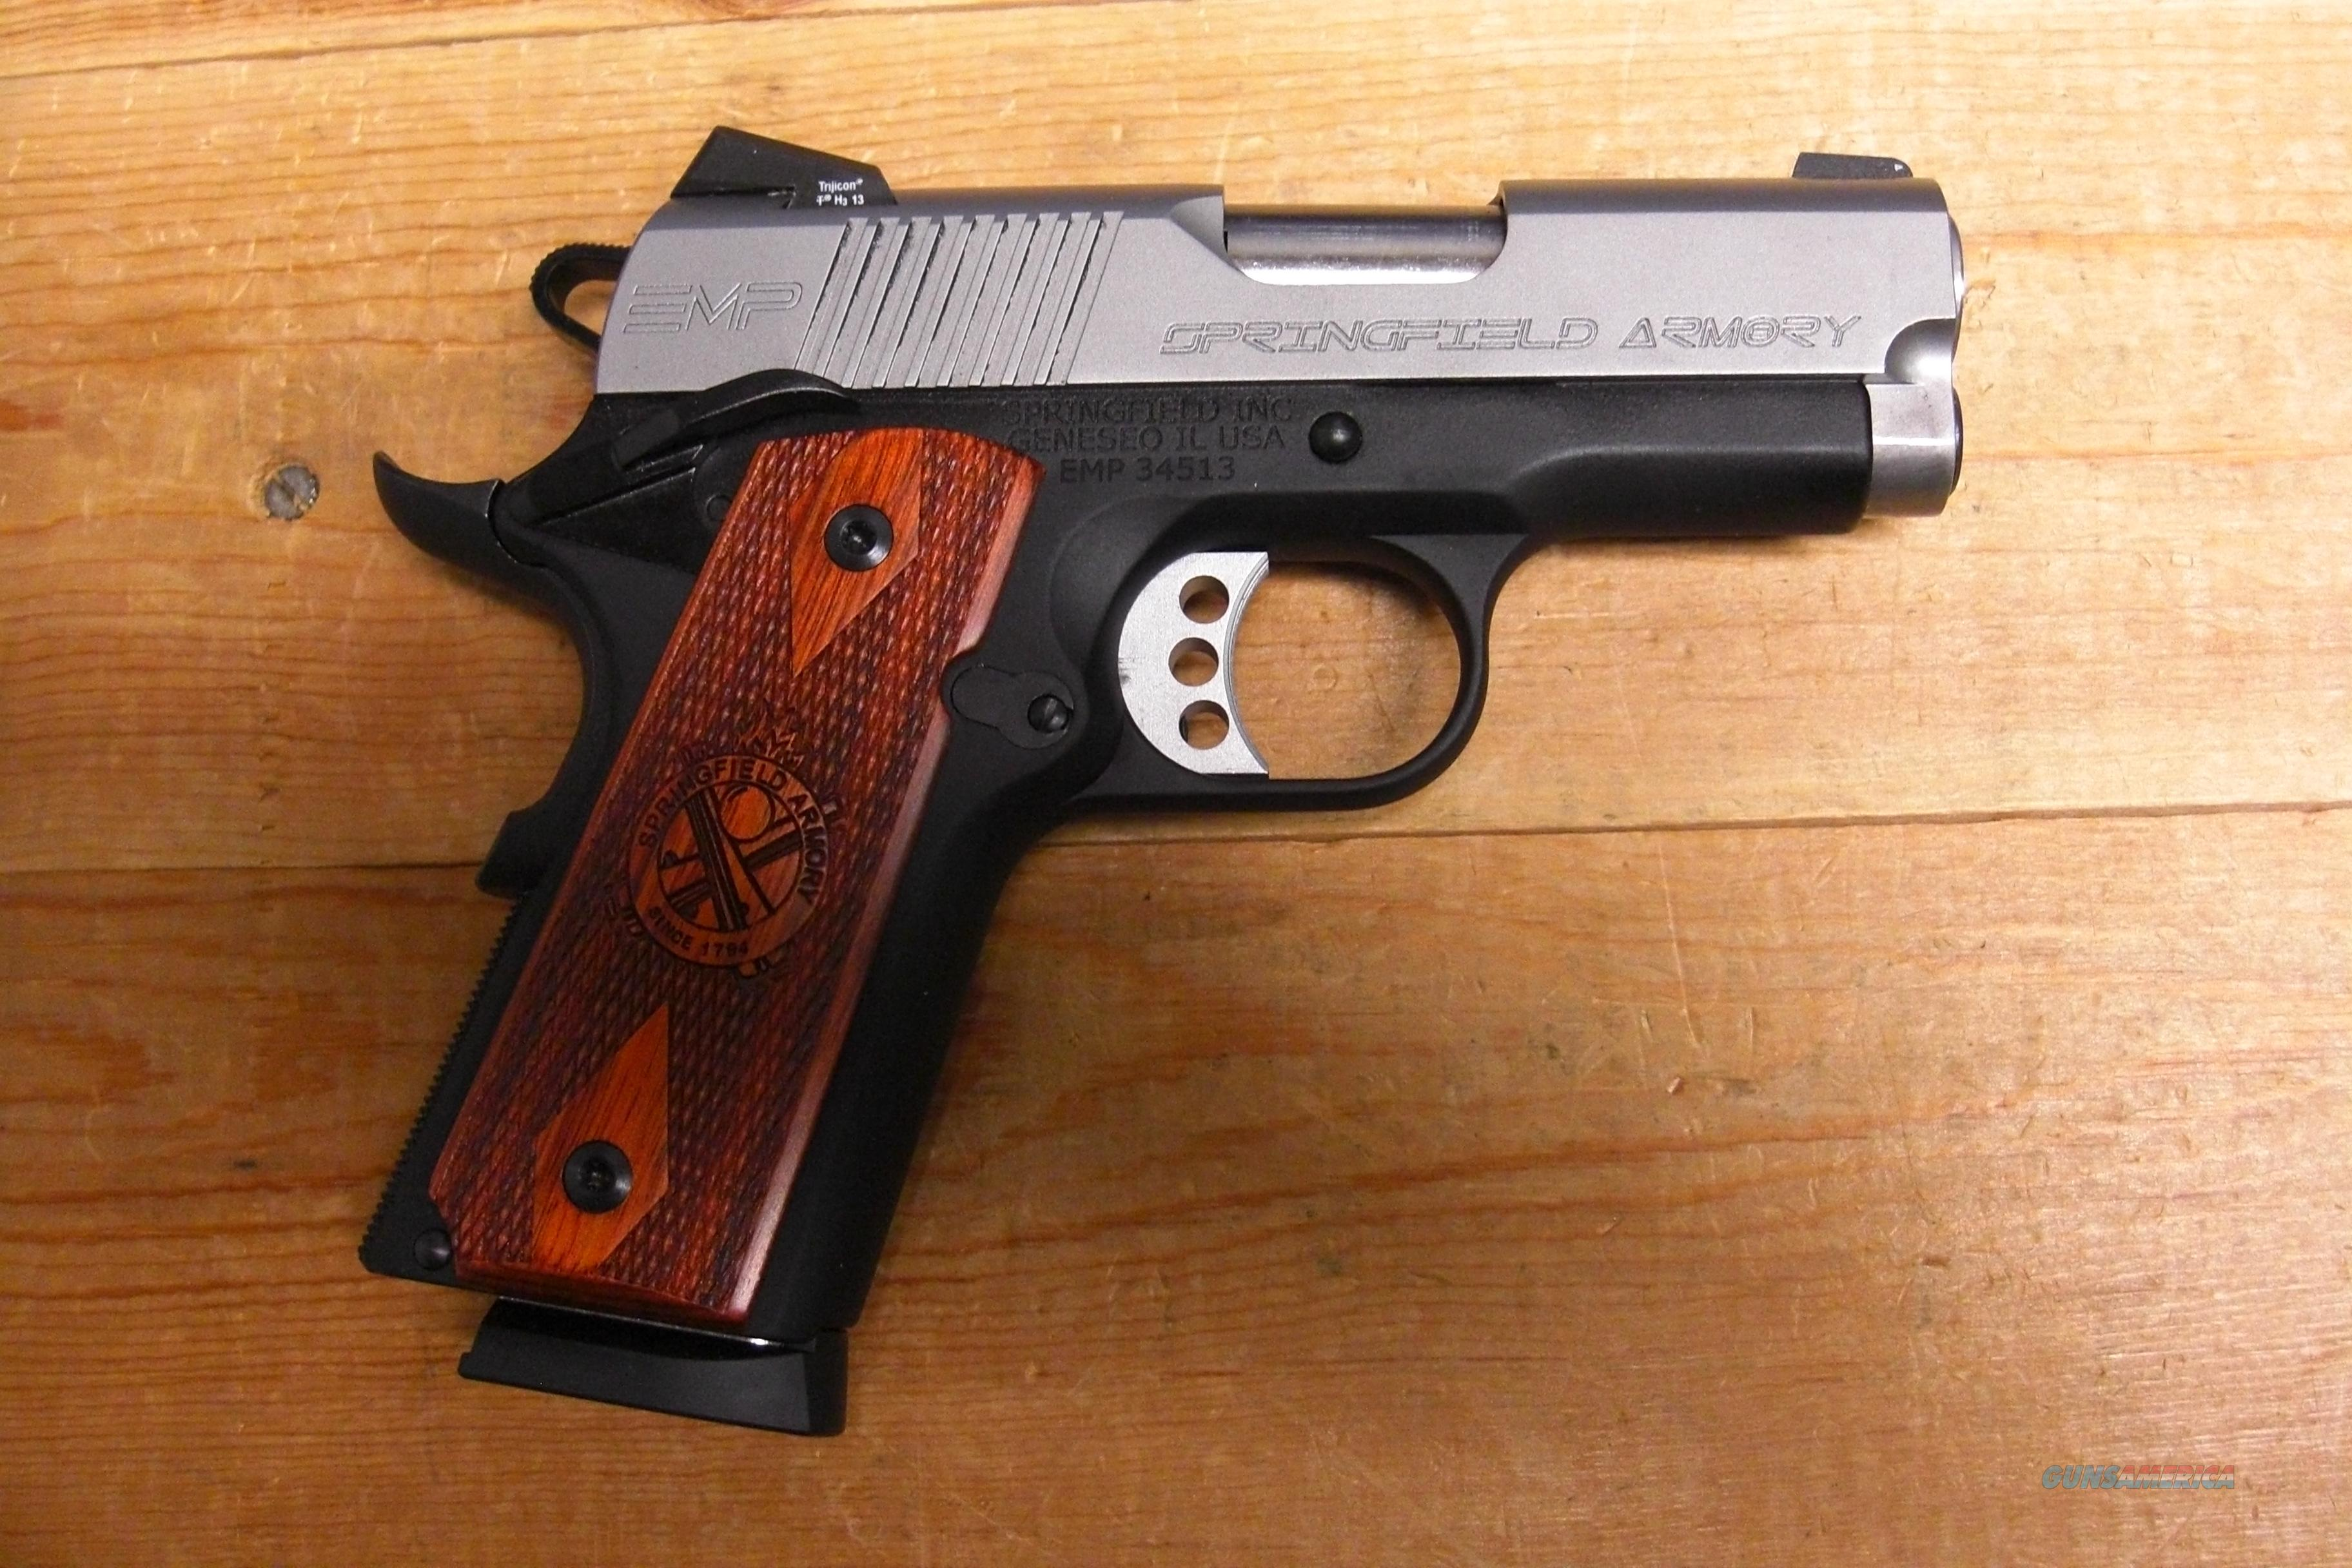 EMP  9mm  w/night sights  Guns > Pistols > Springfield Armory Pistols > 1911 Type